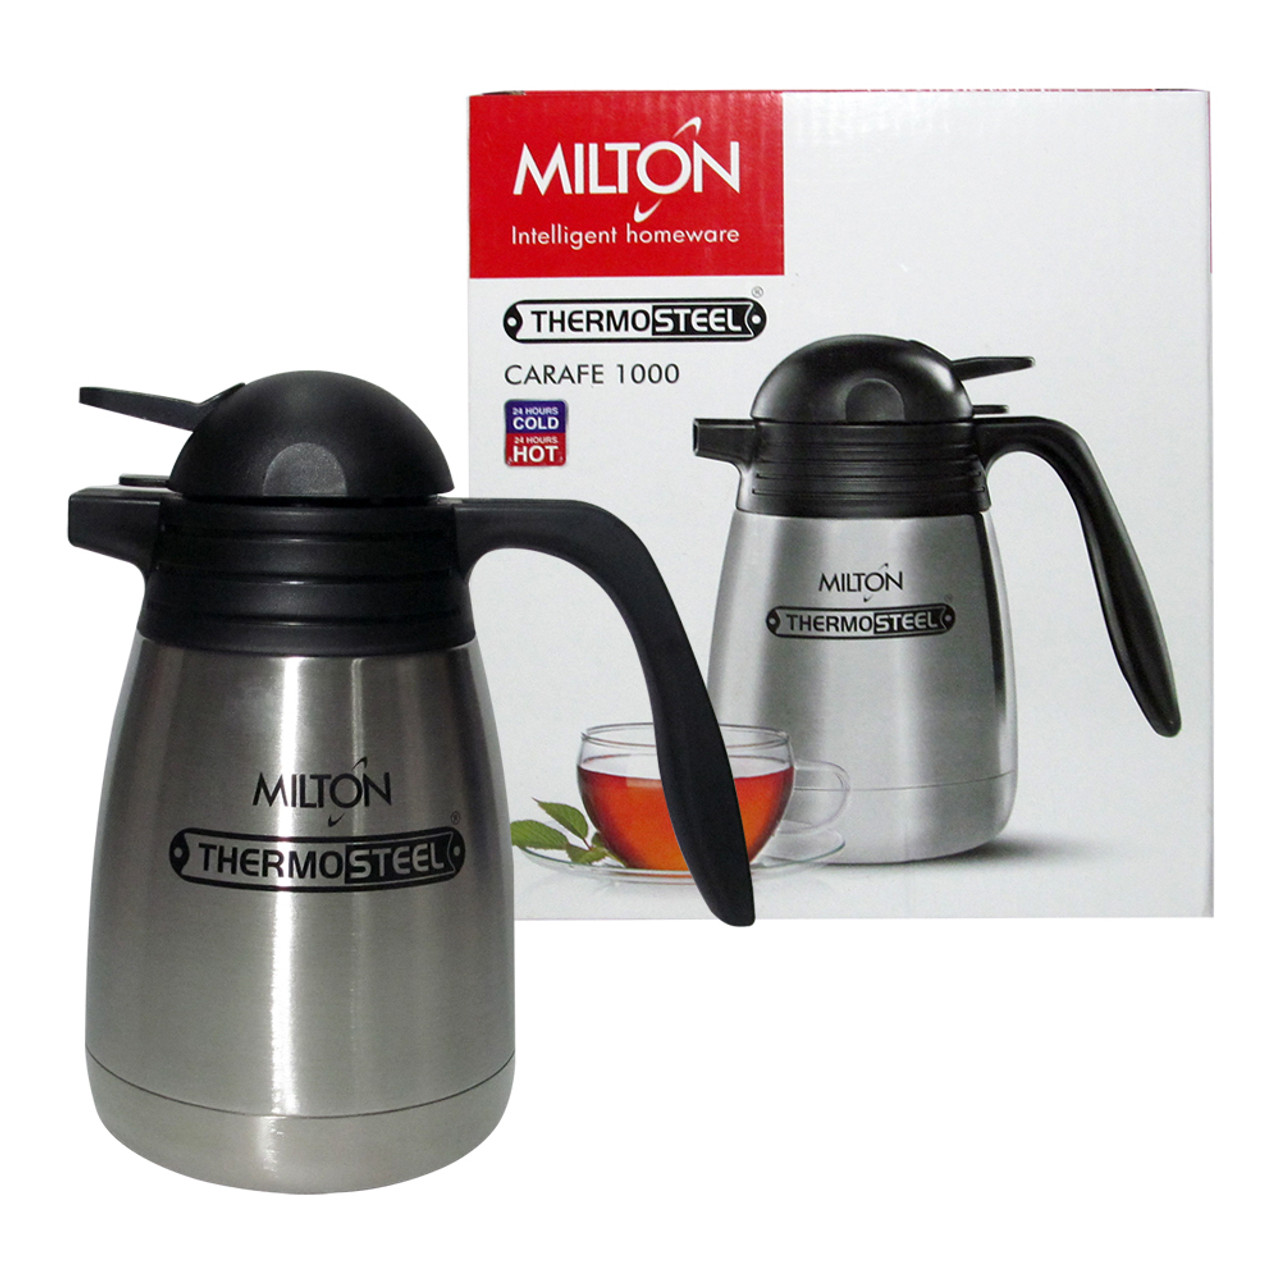 Milton Thermosteel Carafe, 1000 ML Vacuum Insulated Hot And Cold Flask - Image 1